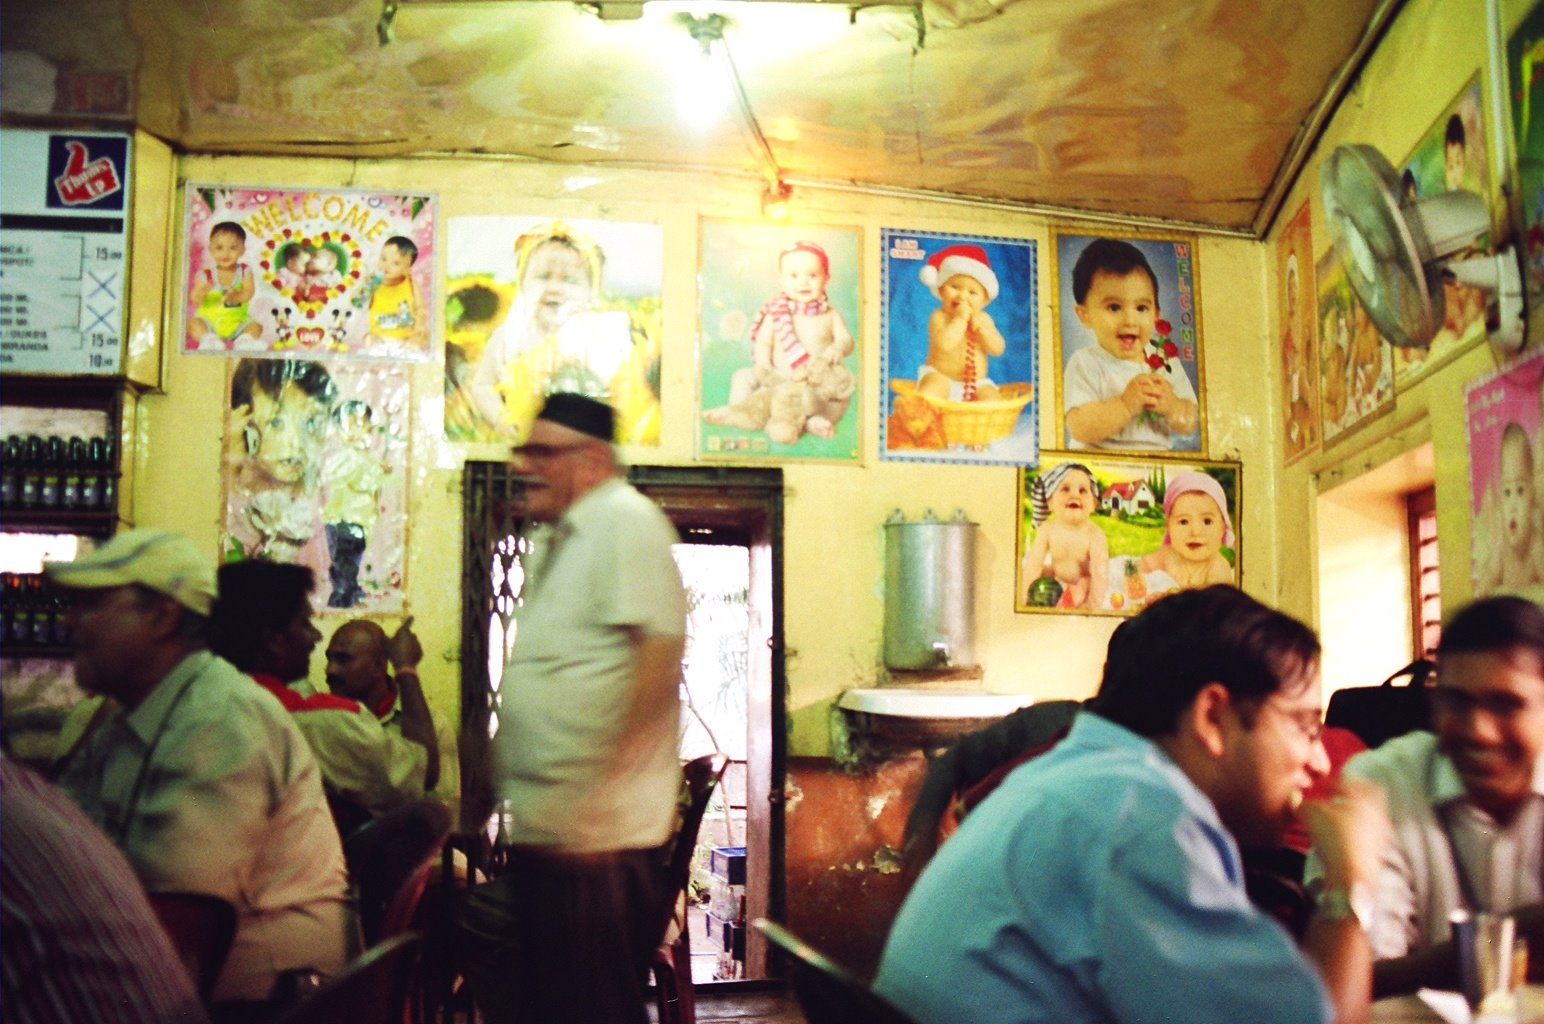 Inside the Irani Restaurant 01